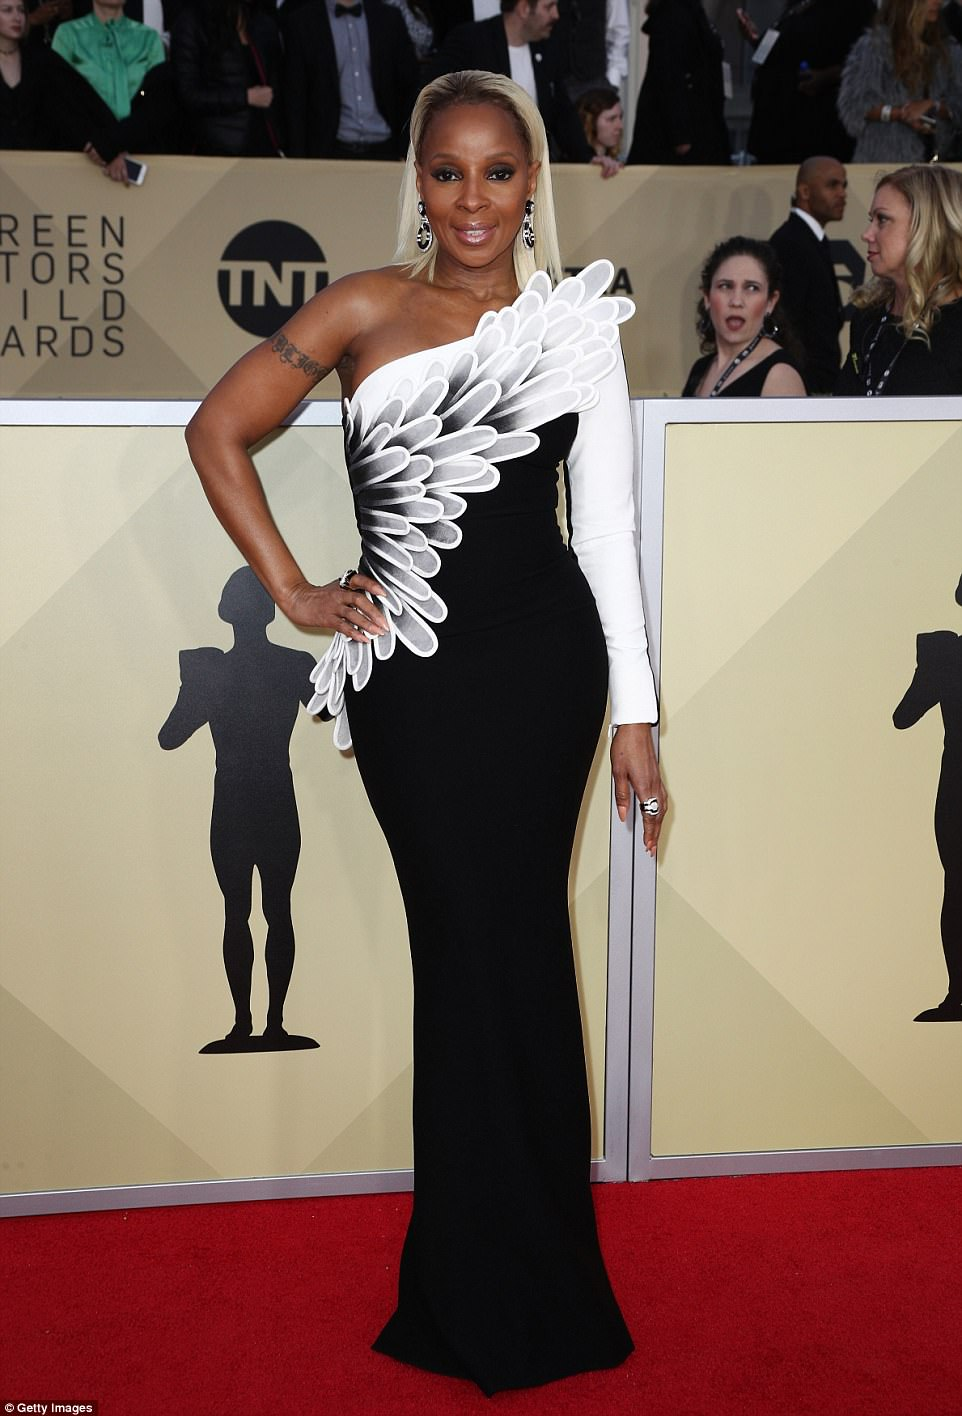 486D7FC900000578-5295901-High_flyer_Mary_J_Blige_looked_as_if_she_was_about_to_take_fligh-a-6_1516593658361